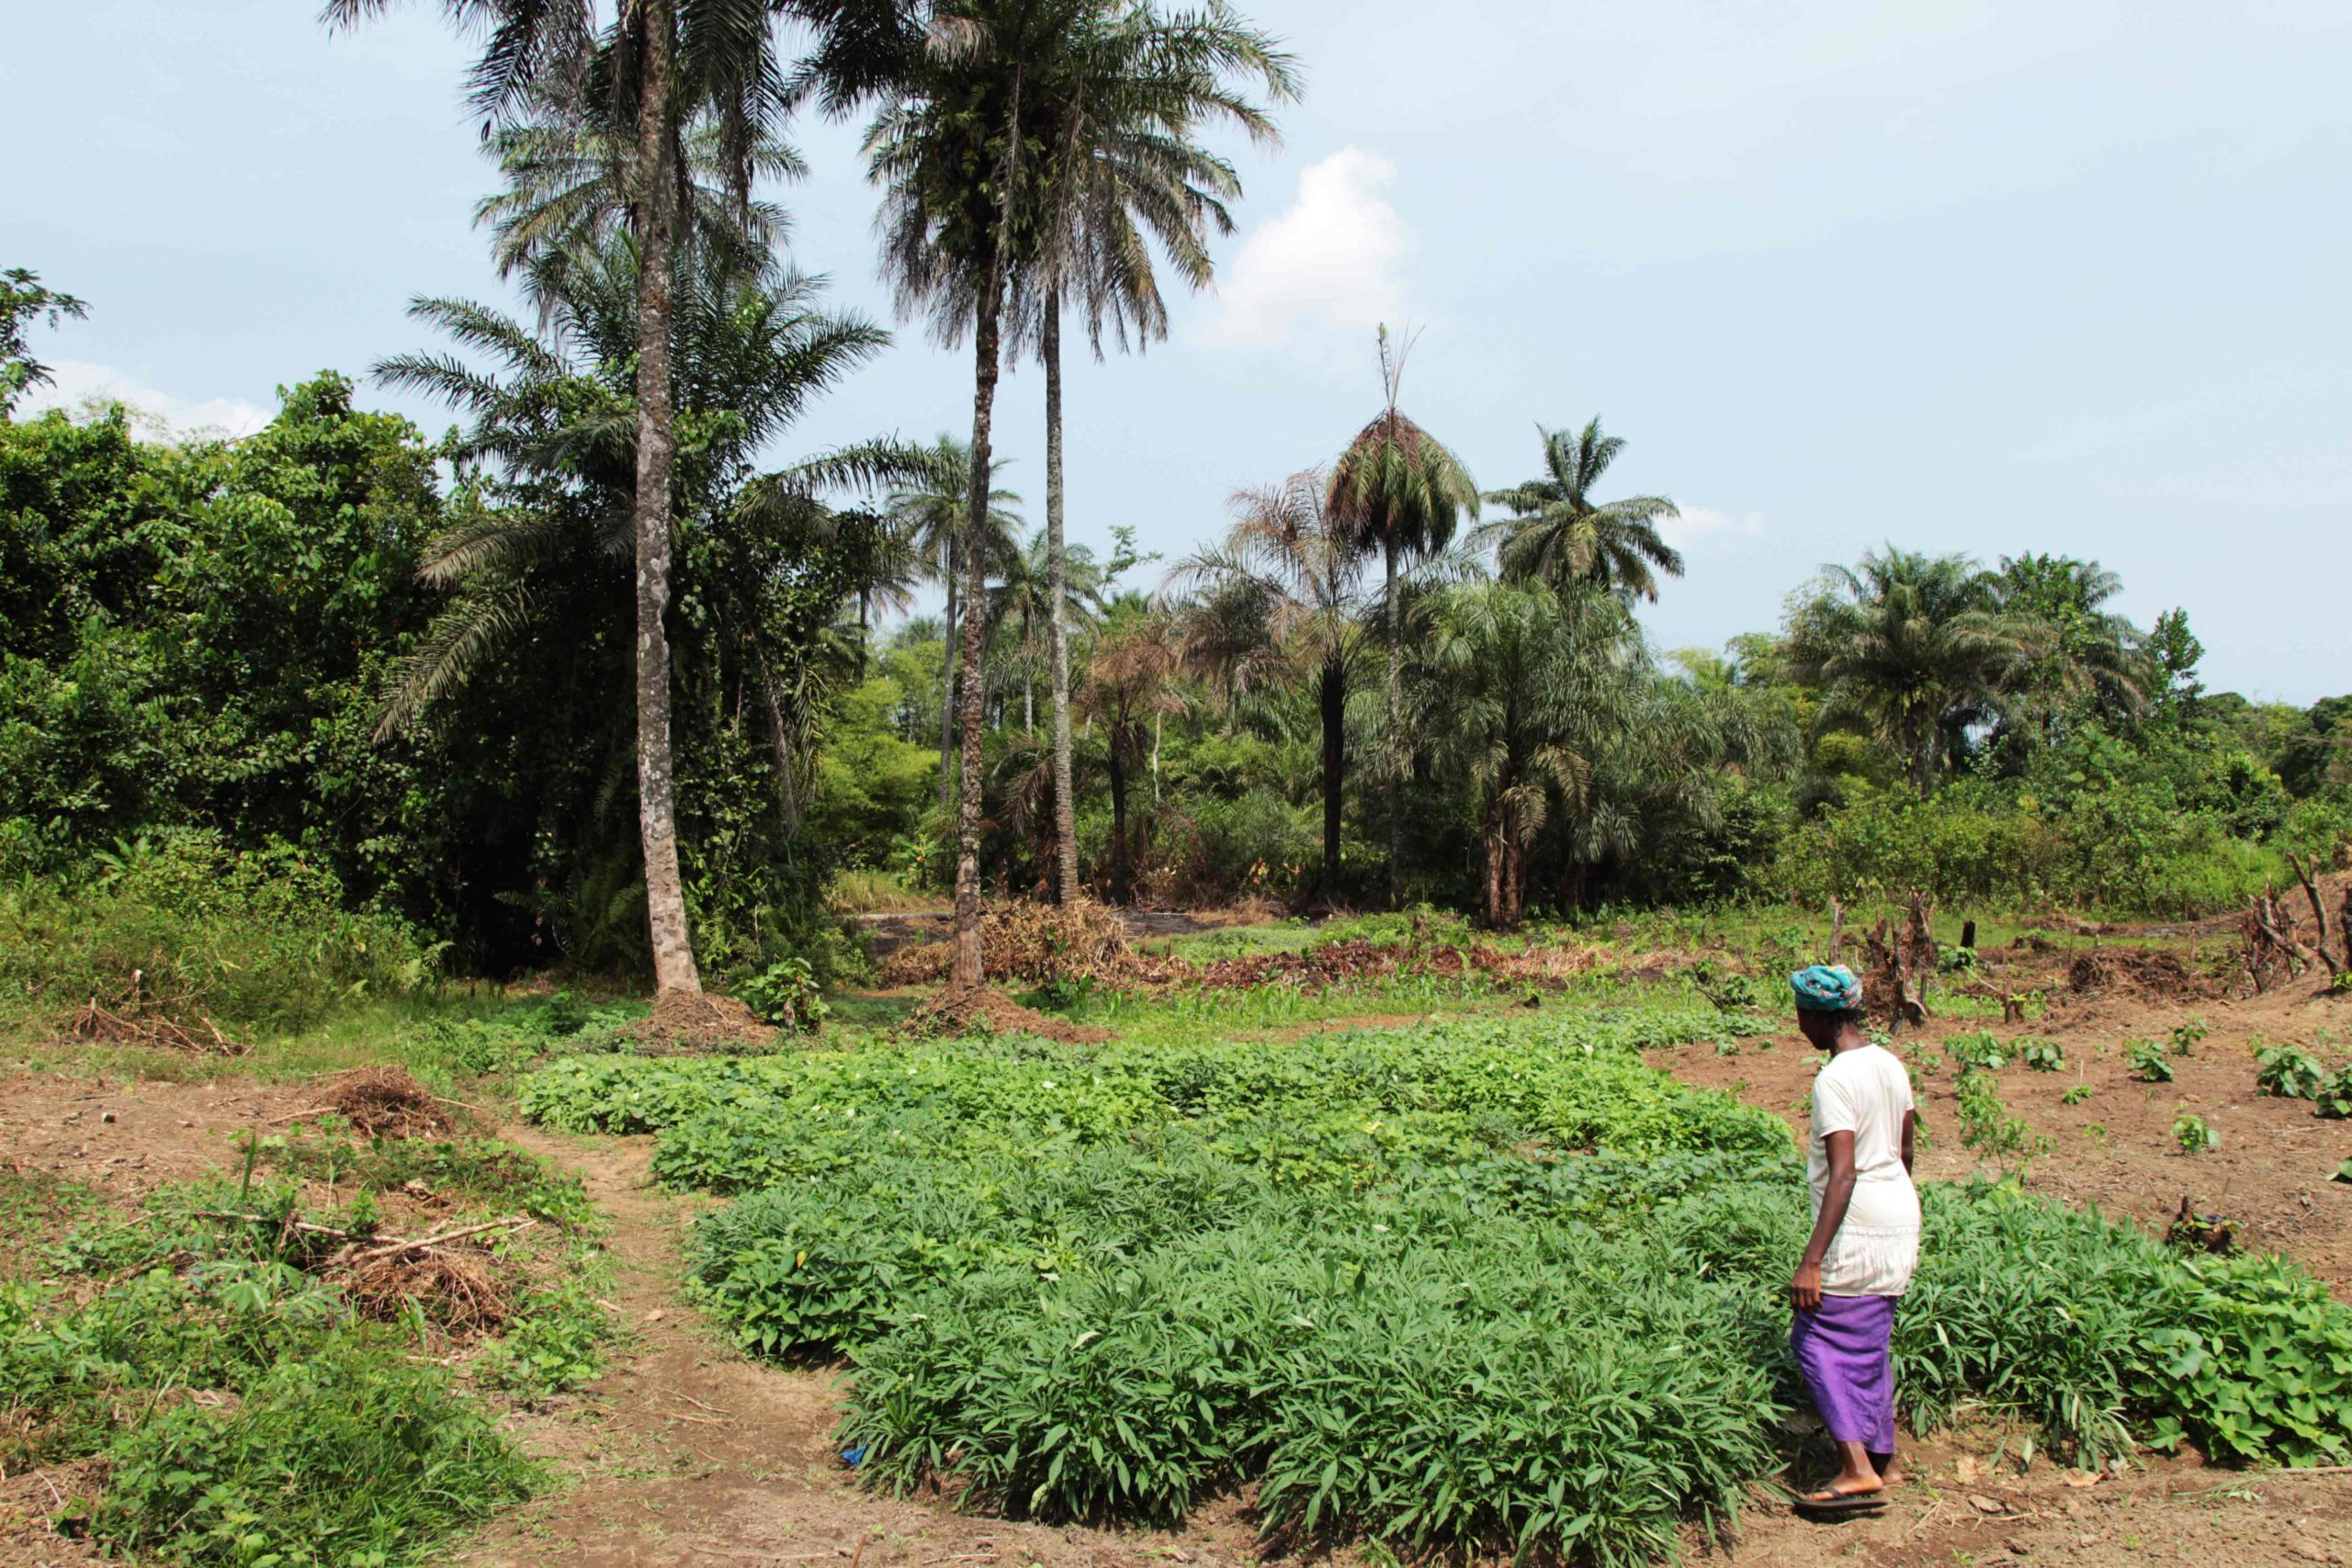 Farmer Fatu in her field in Liberia